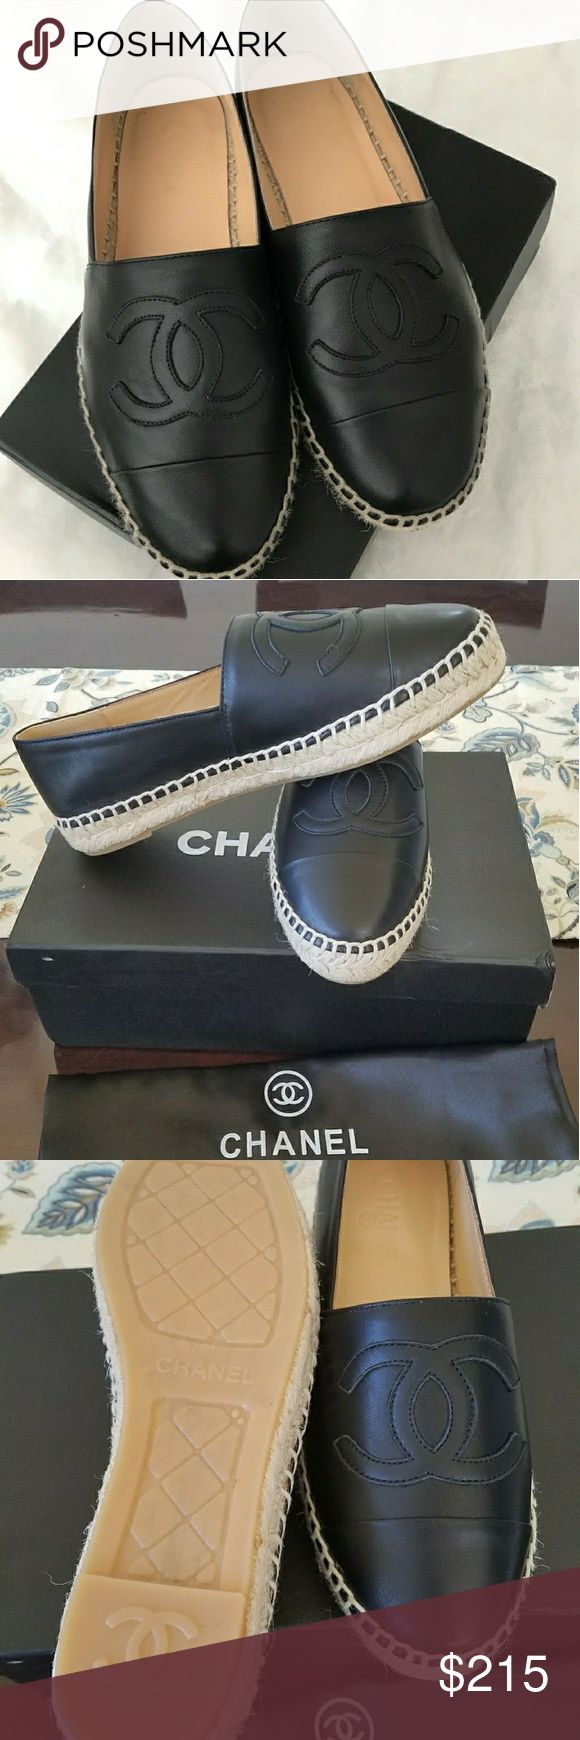 Chanel Espadrilles Espadrilles inspired by Chanel. Price reflect authenticity. Amazing guality. Buttery soft lambskin leather. Sizes run small. Order a full size larger for a perfect fit. Sorry no trades ! Price is FIRM. CHANEL Shoes Espadrilles